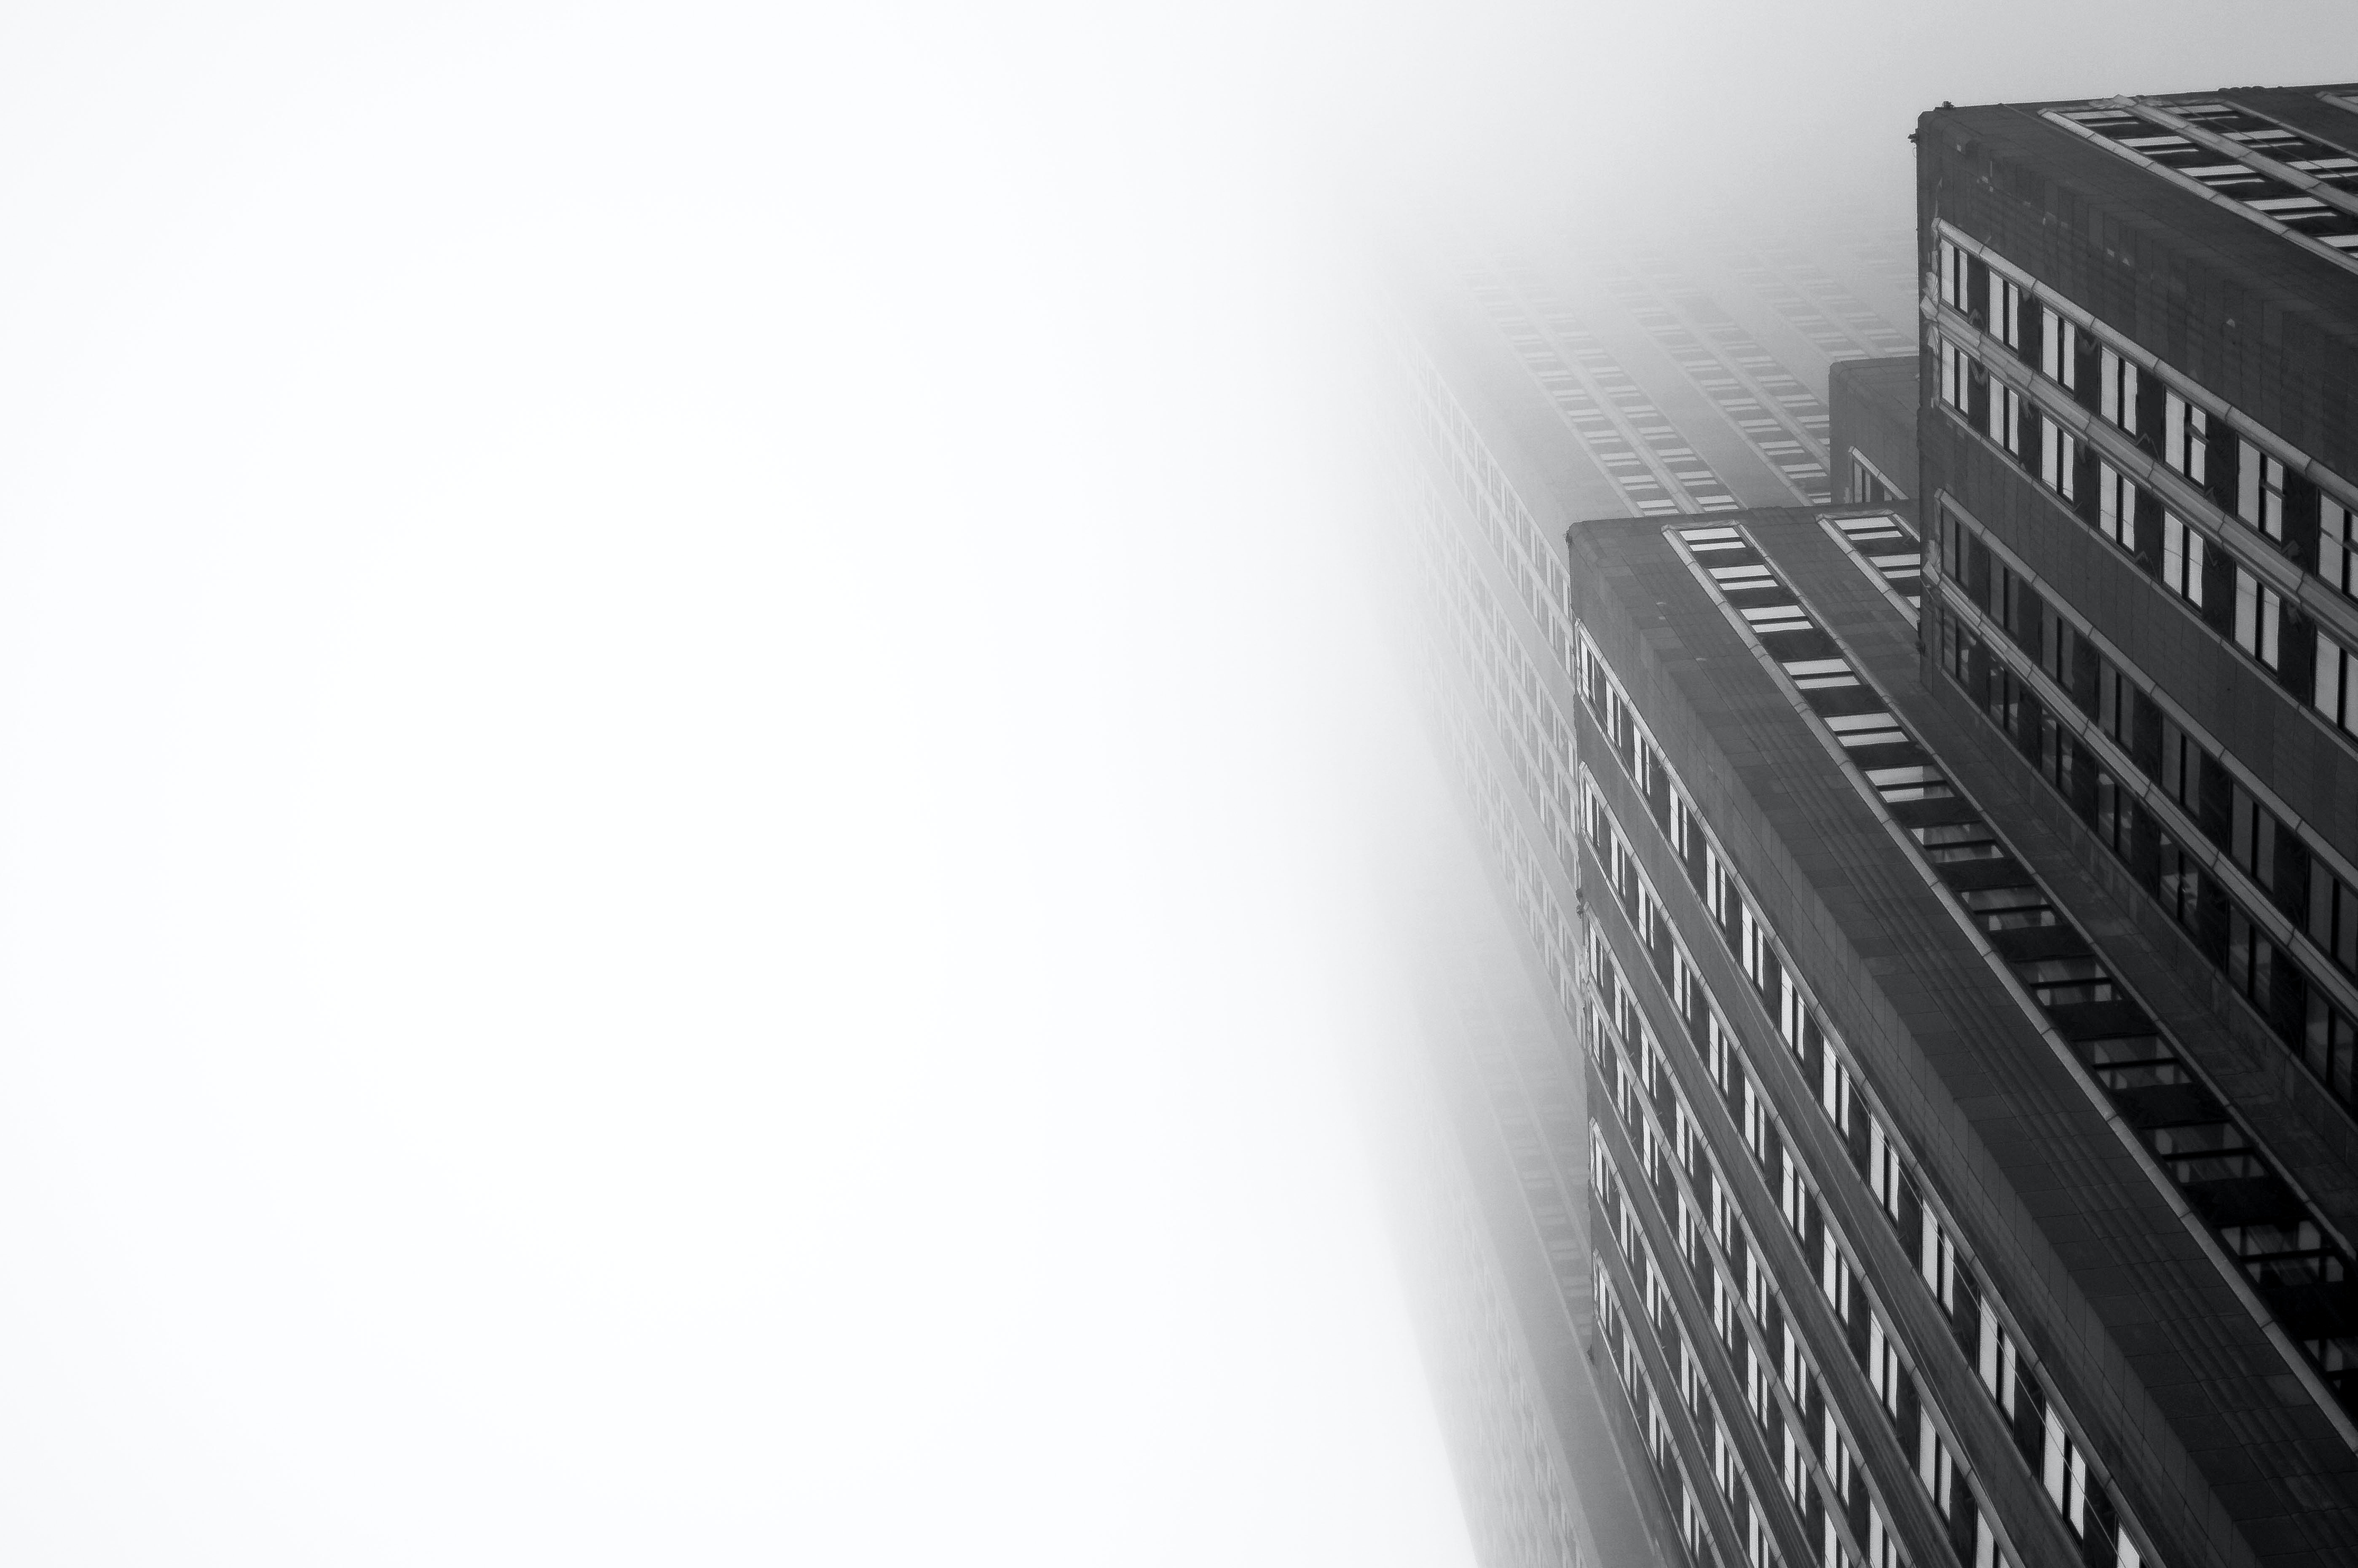 The towering Empire State Building shrouded in thick fog